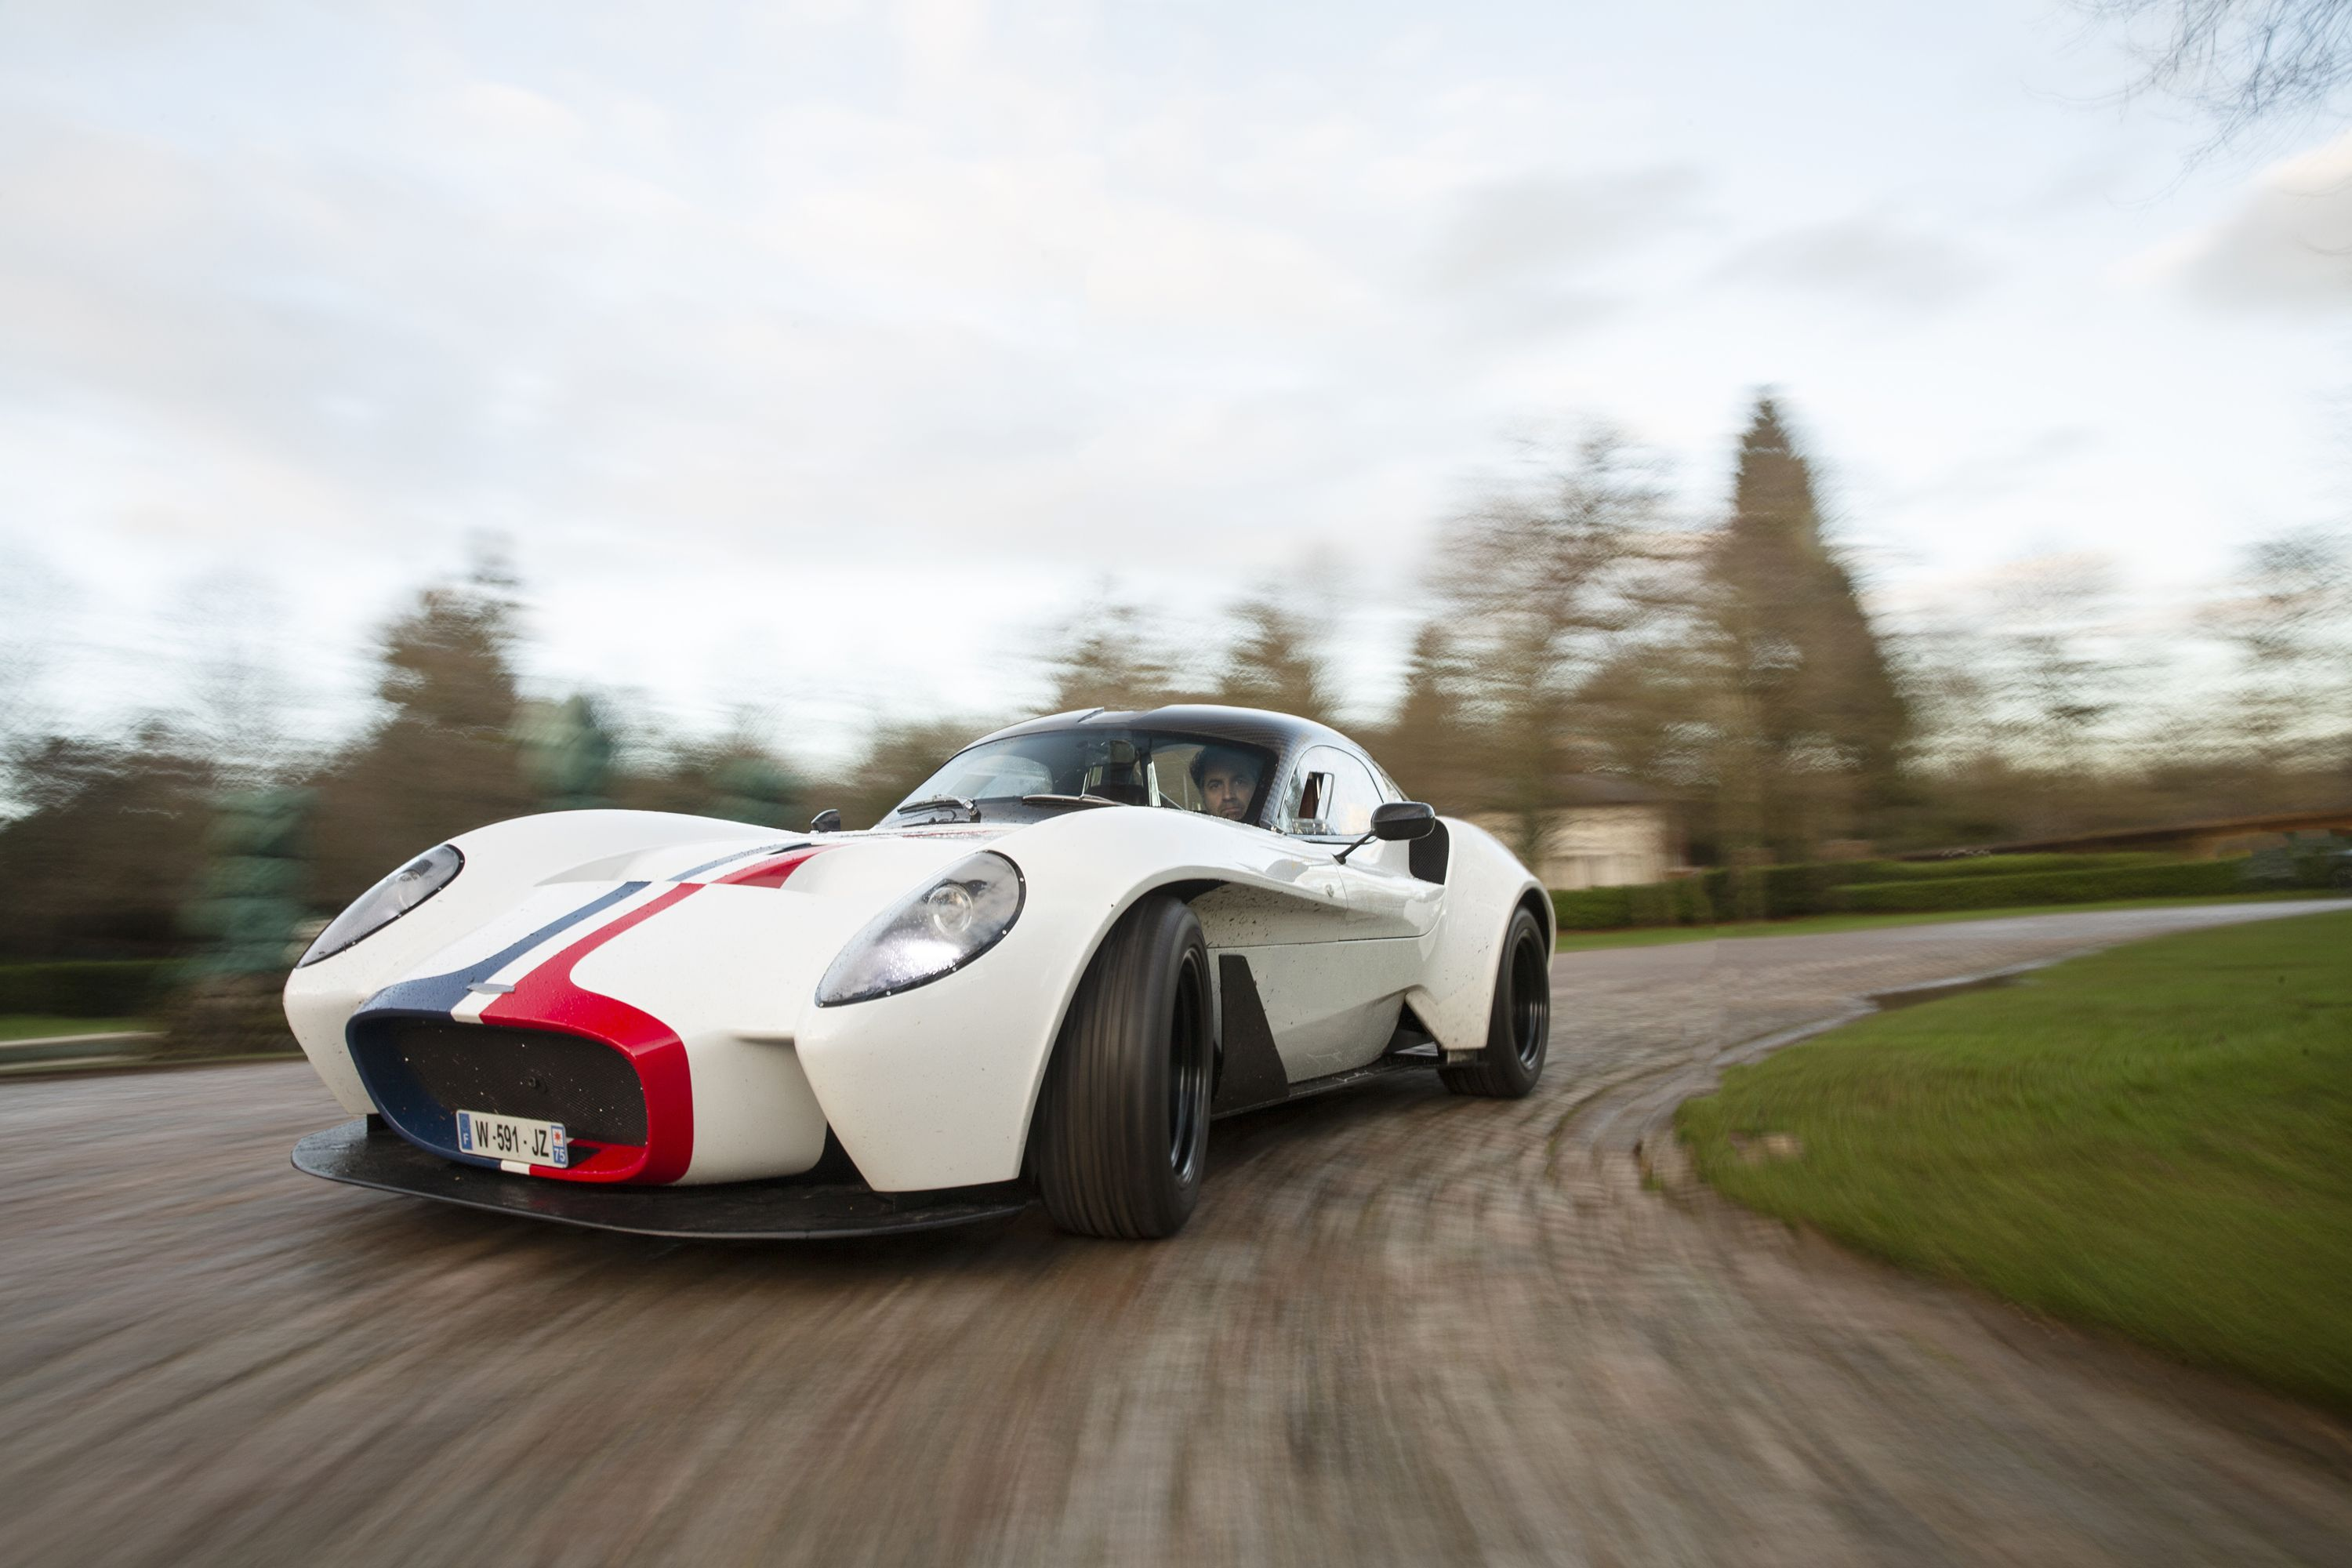 The Jannarelly Design-1 Is a Bare-Bones Throwback Sports Car That Works